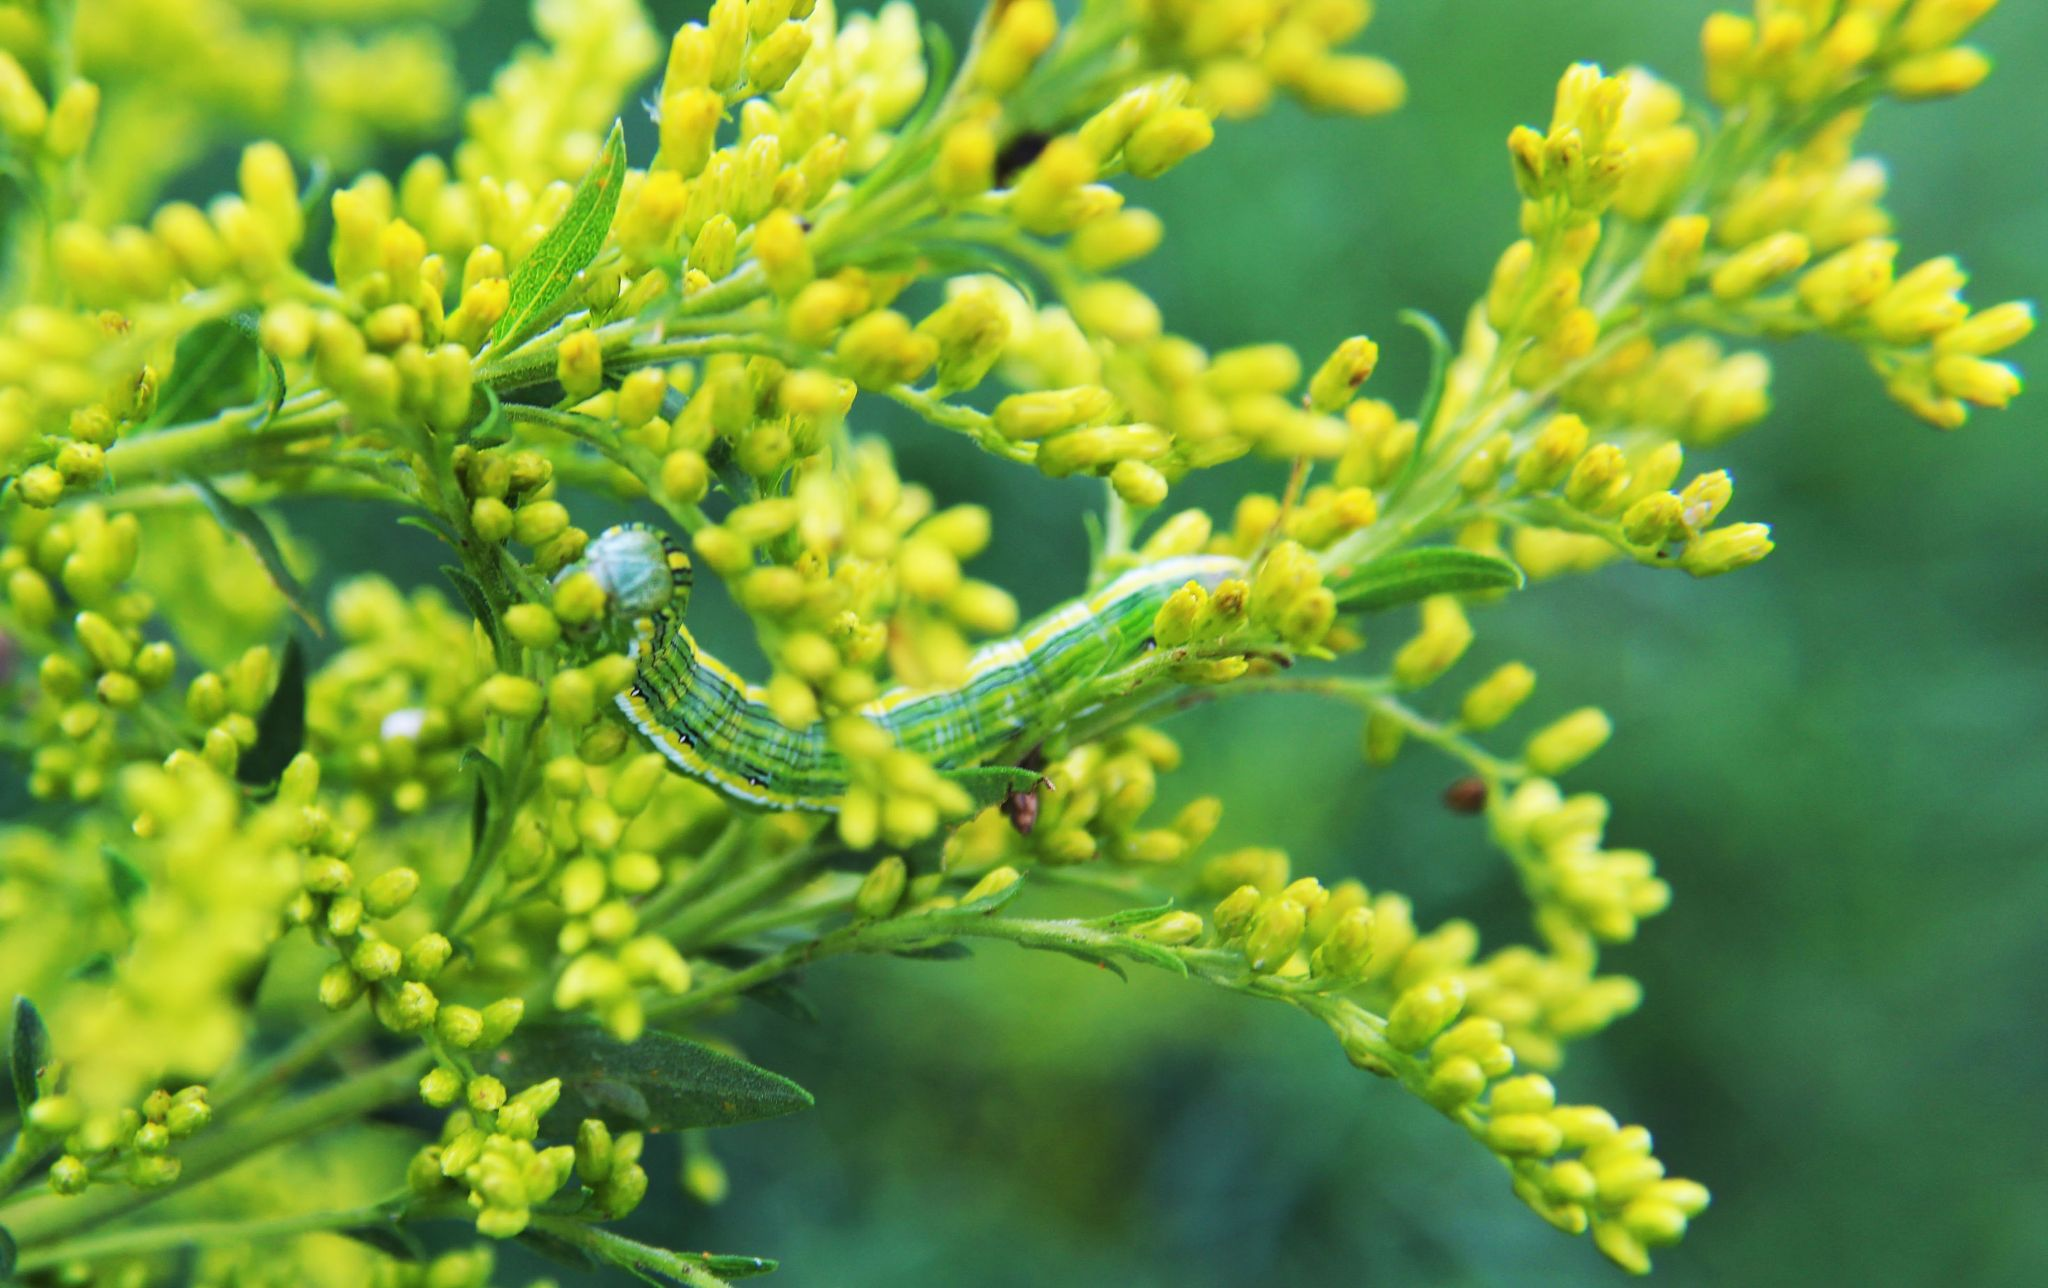 Hooded Owlet Caterpillar on Goldenrod by Petrichor